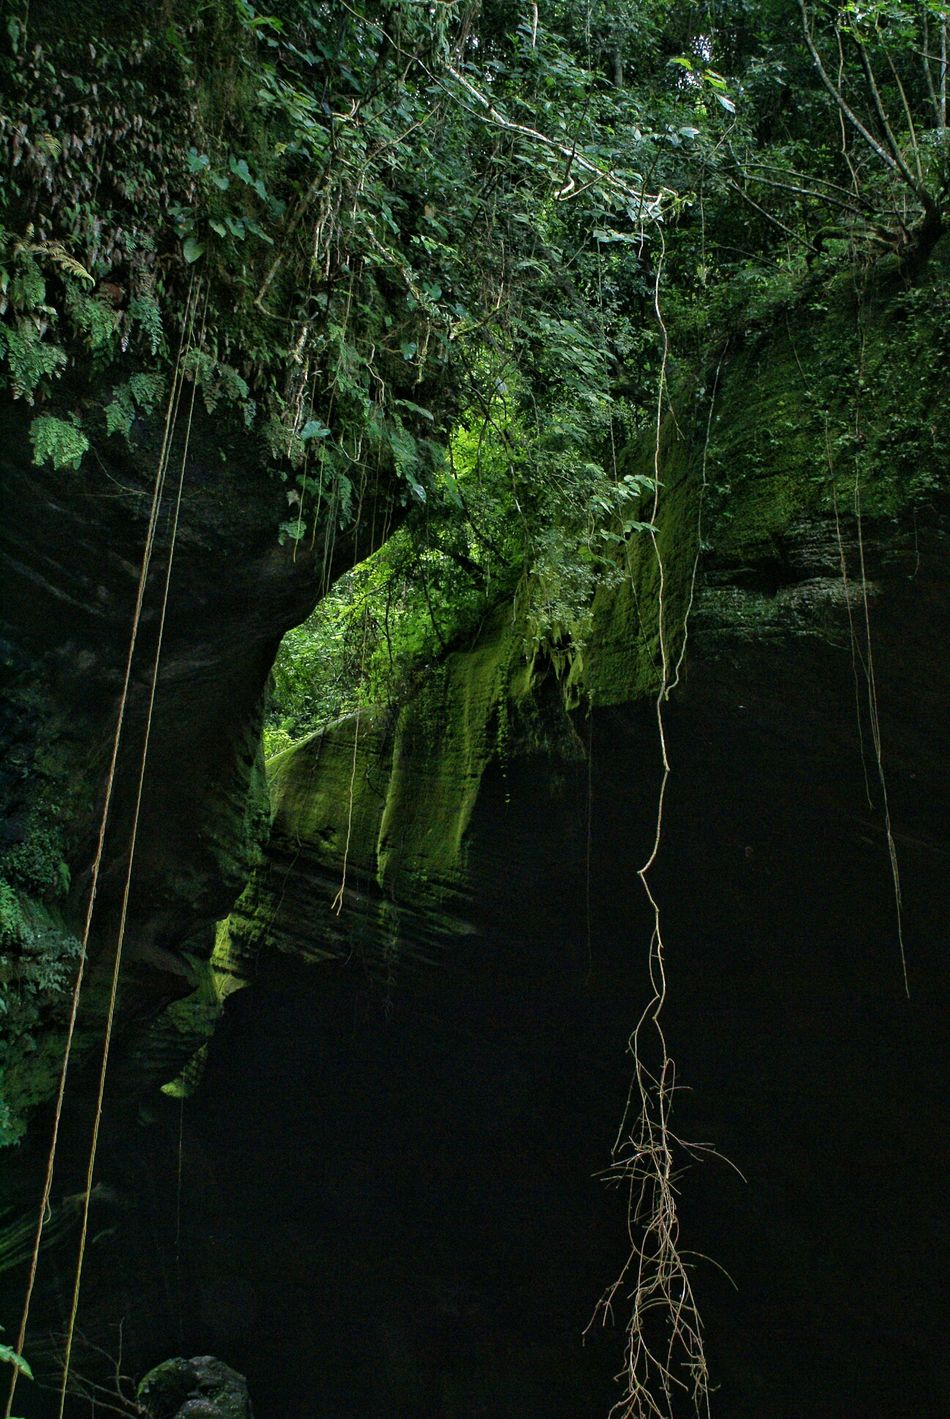 Try to Picture, on the River Bed, You walk Under The Jungle in a 50 meter high Gorge. Just Gorgeous. Awesome_nature_shots NEM Landscapes NEM Green Streamzoofamily # Landscapes of Brasil